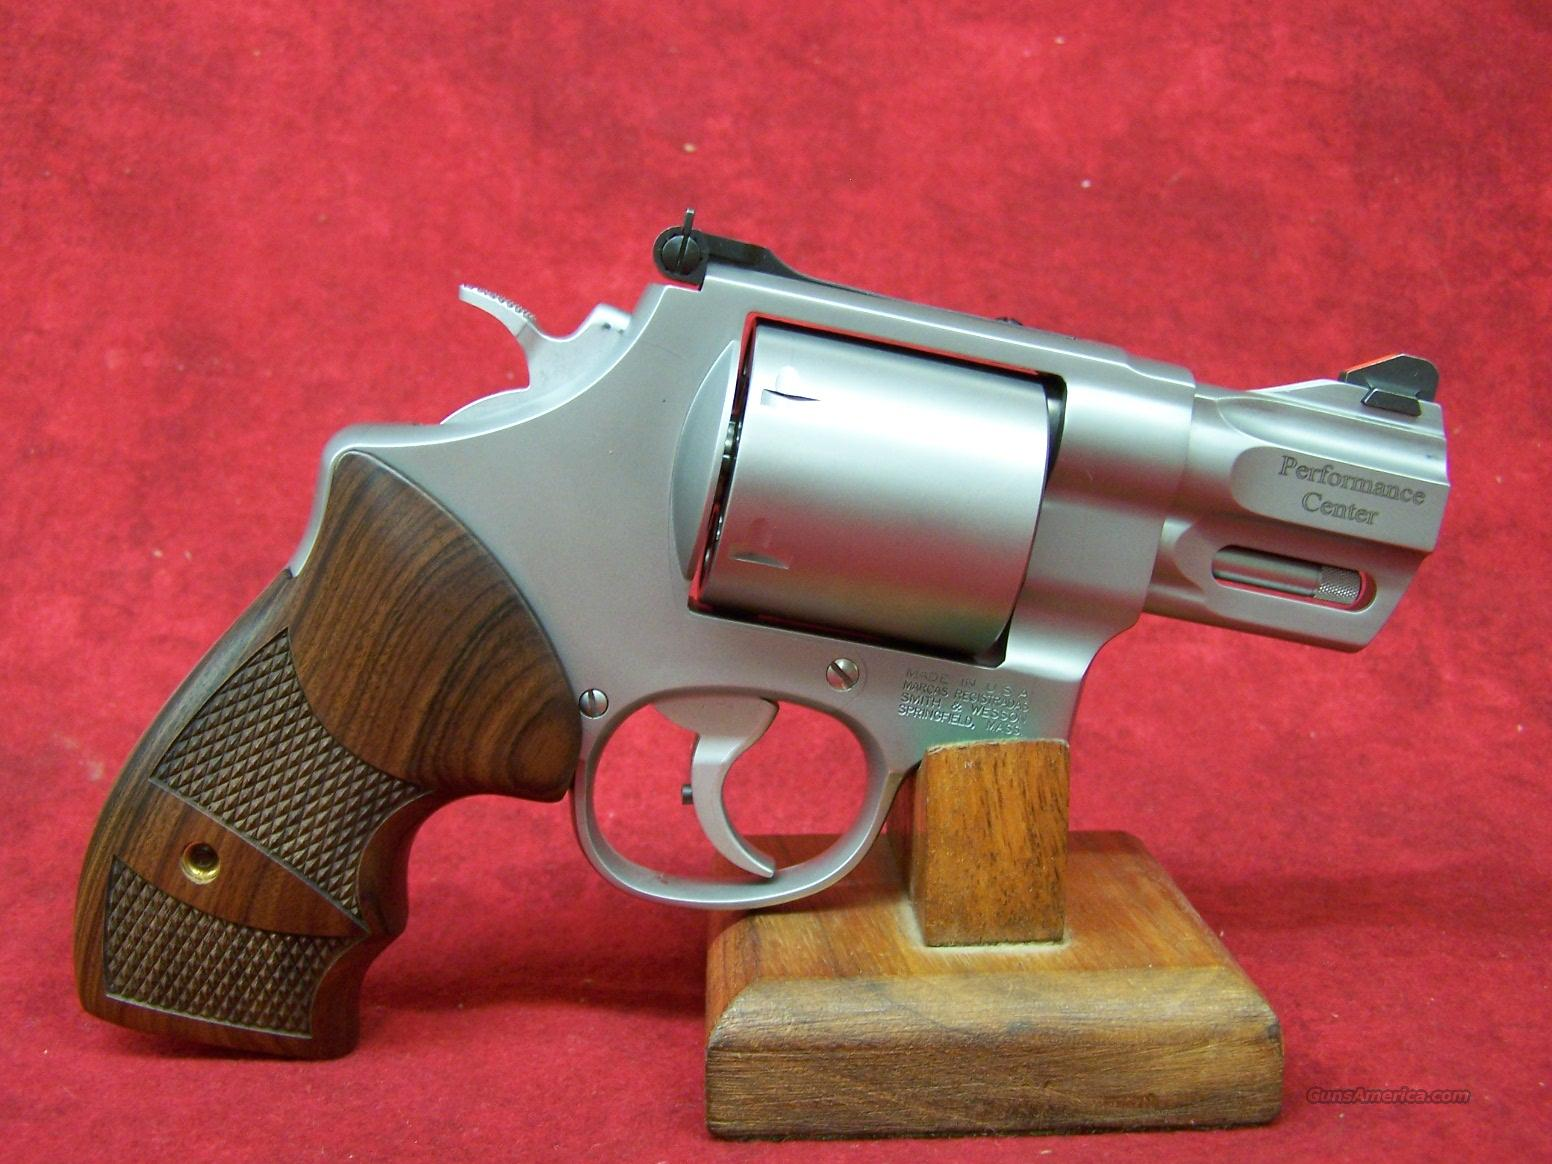 "Smith & Wesson 629 Performance Center 44 MAG 2 5/8"" 6RD SS WOOD GRIP (170135)  Guns > Pistols > Smith & Wesson Revolvers > Model 629"